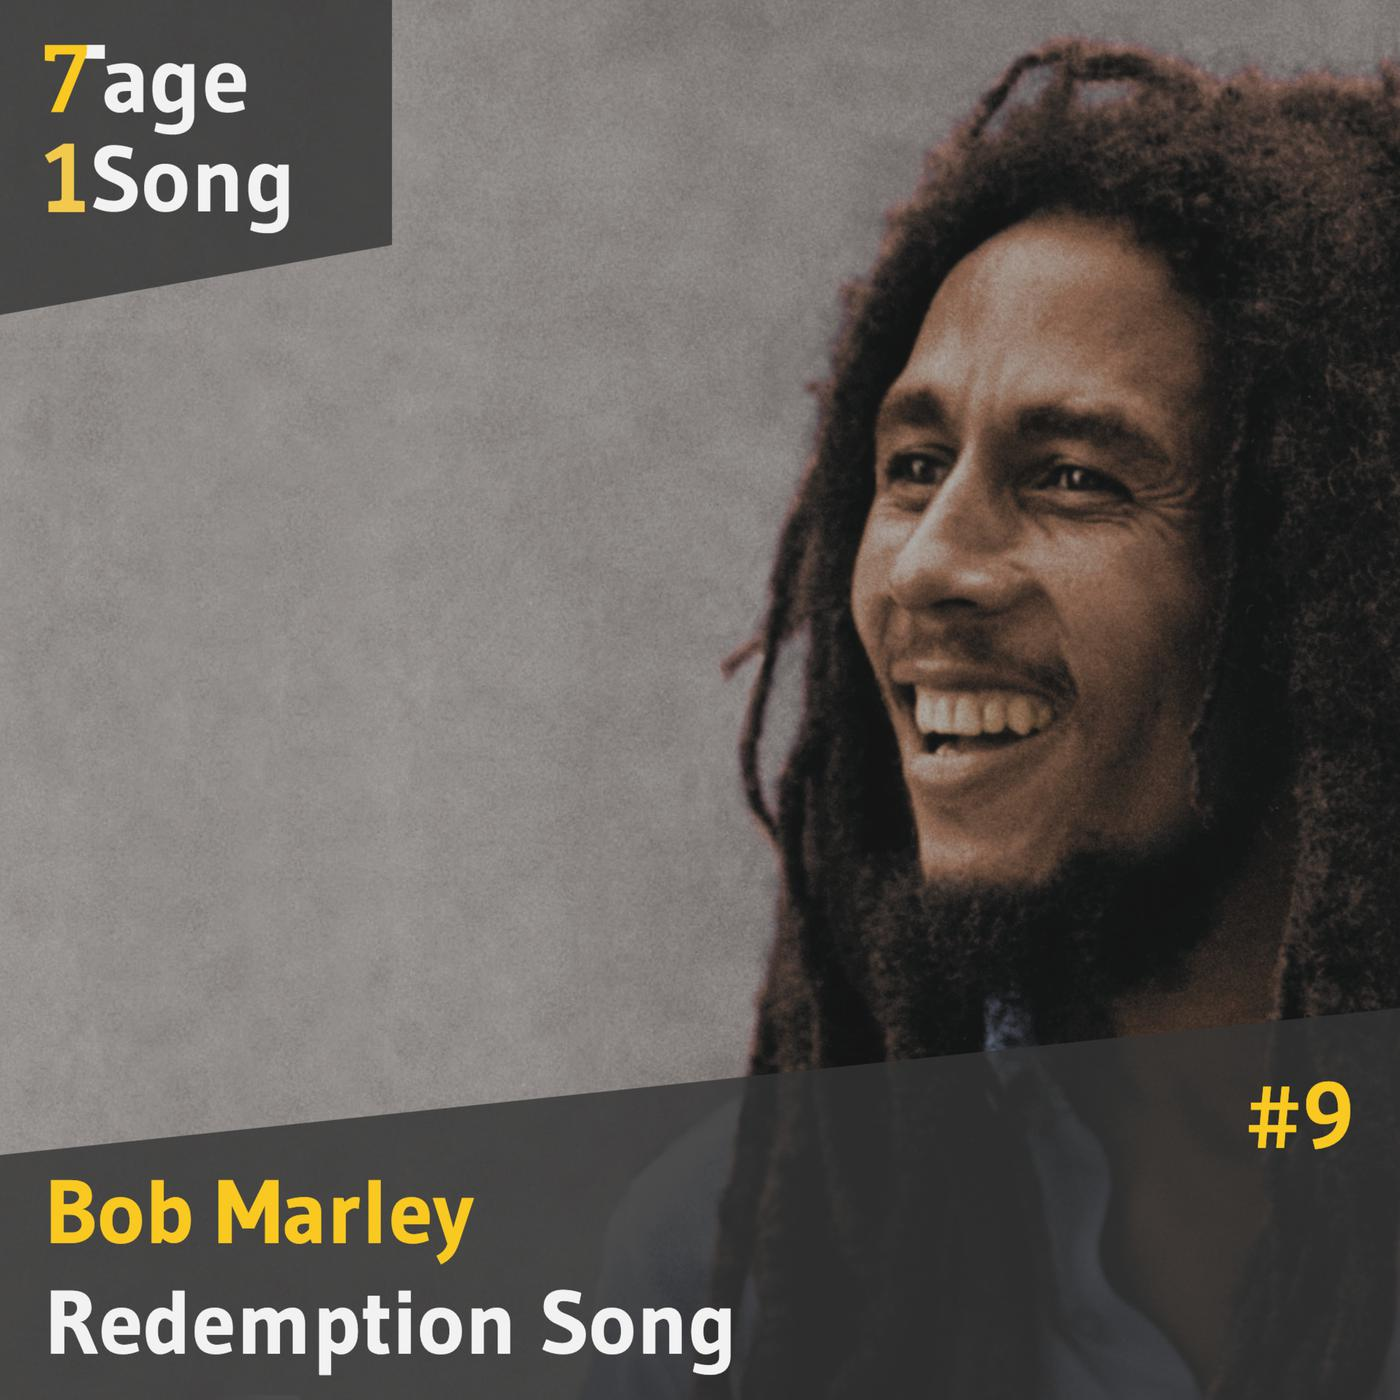 9 Bob Marley - Redemption Song - 7 Tage 1 Song (podcast)